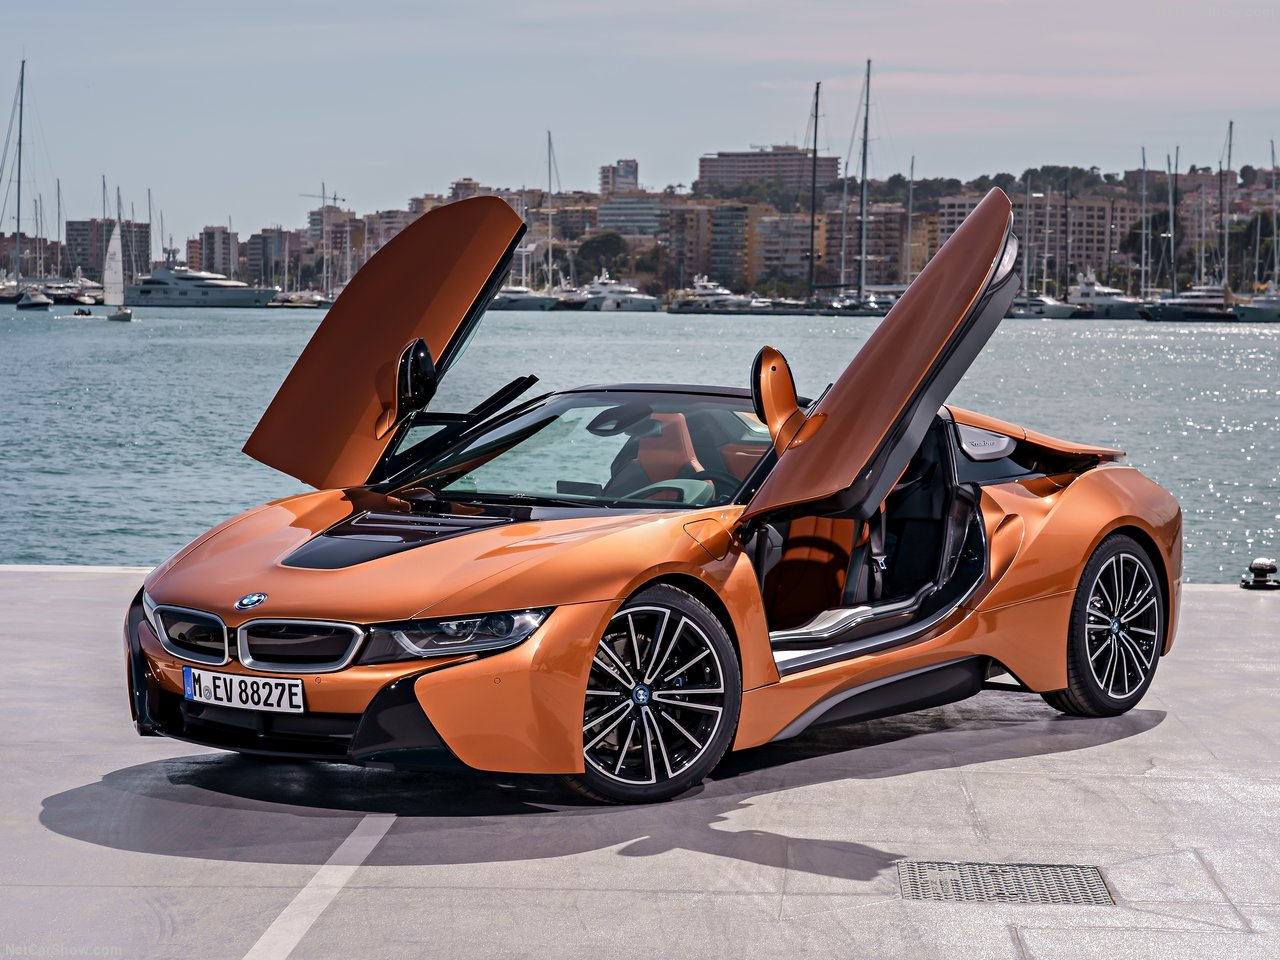 bmw 39 s first ever i8 roadster to debut in singapore at bmw world 2018. Black Bedroom Furniture Sets. Home Design Ideas